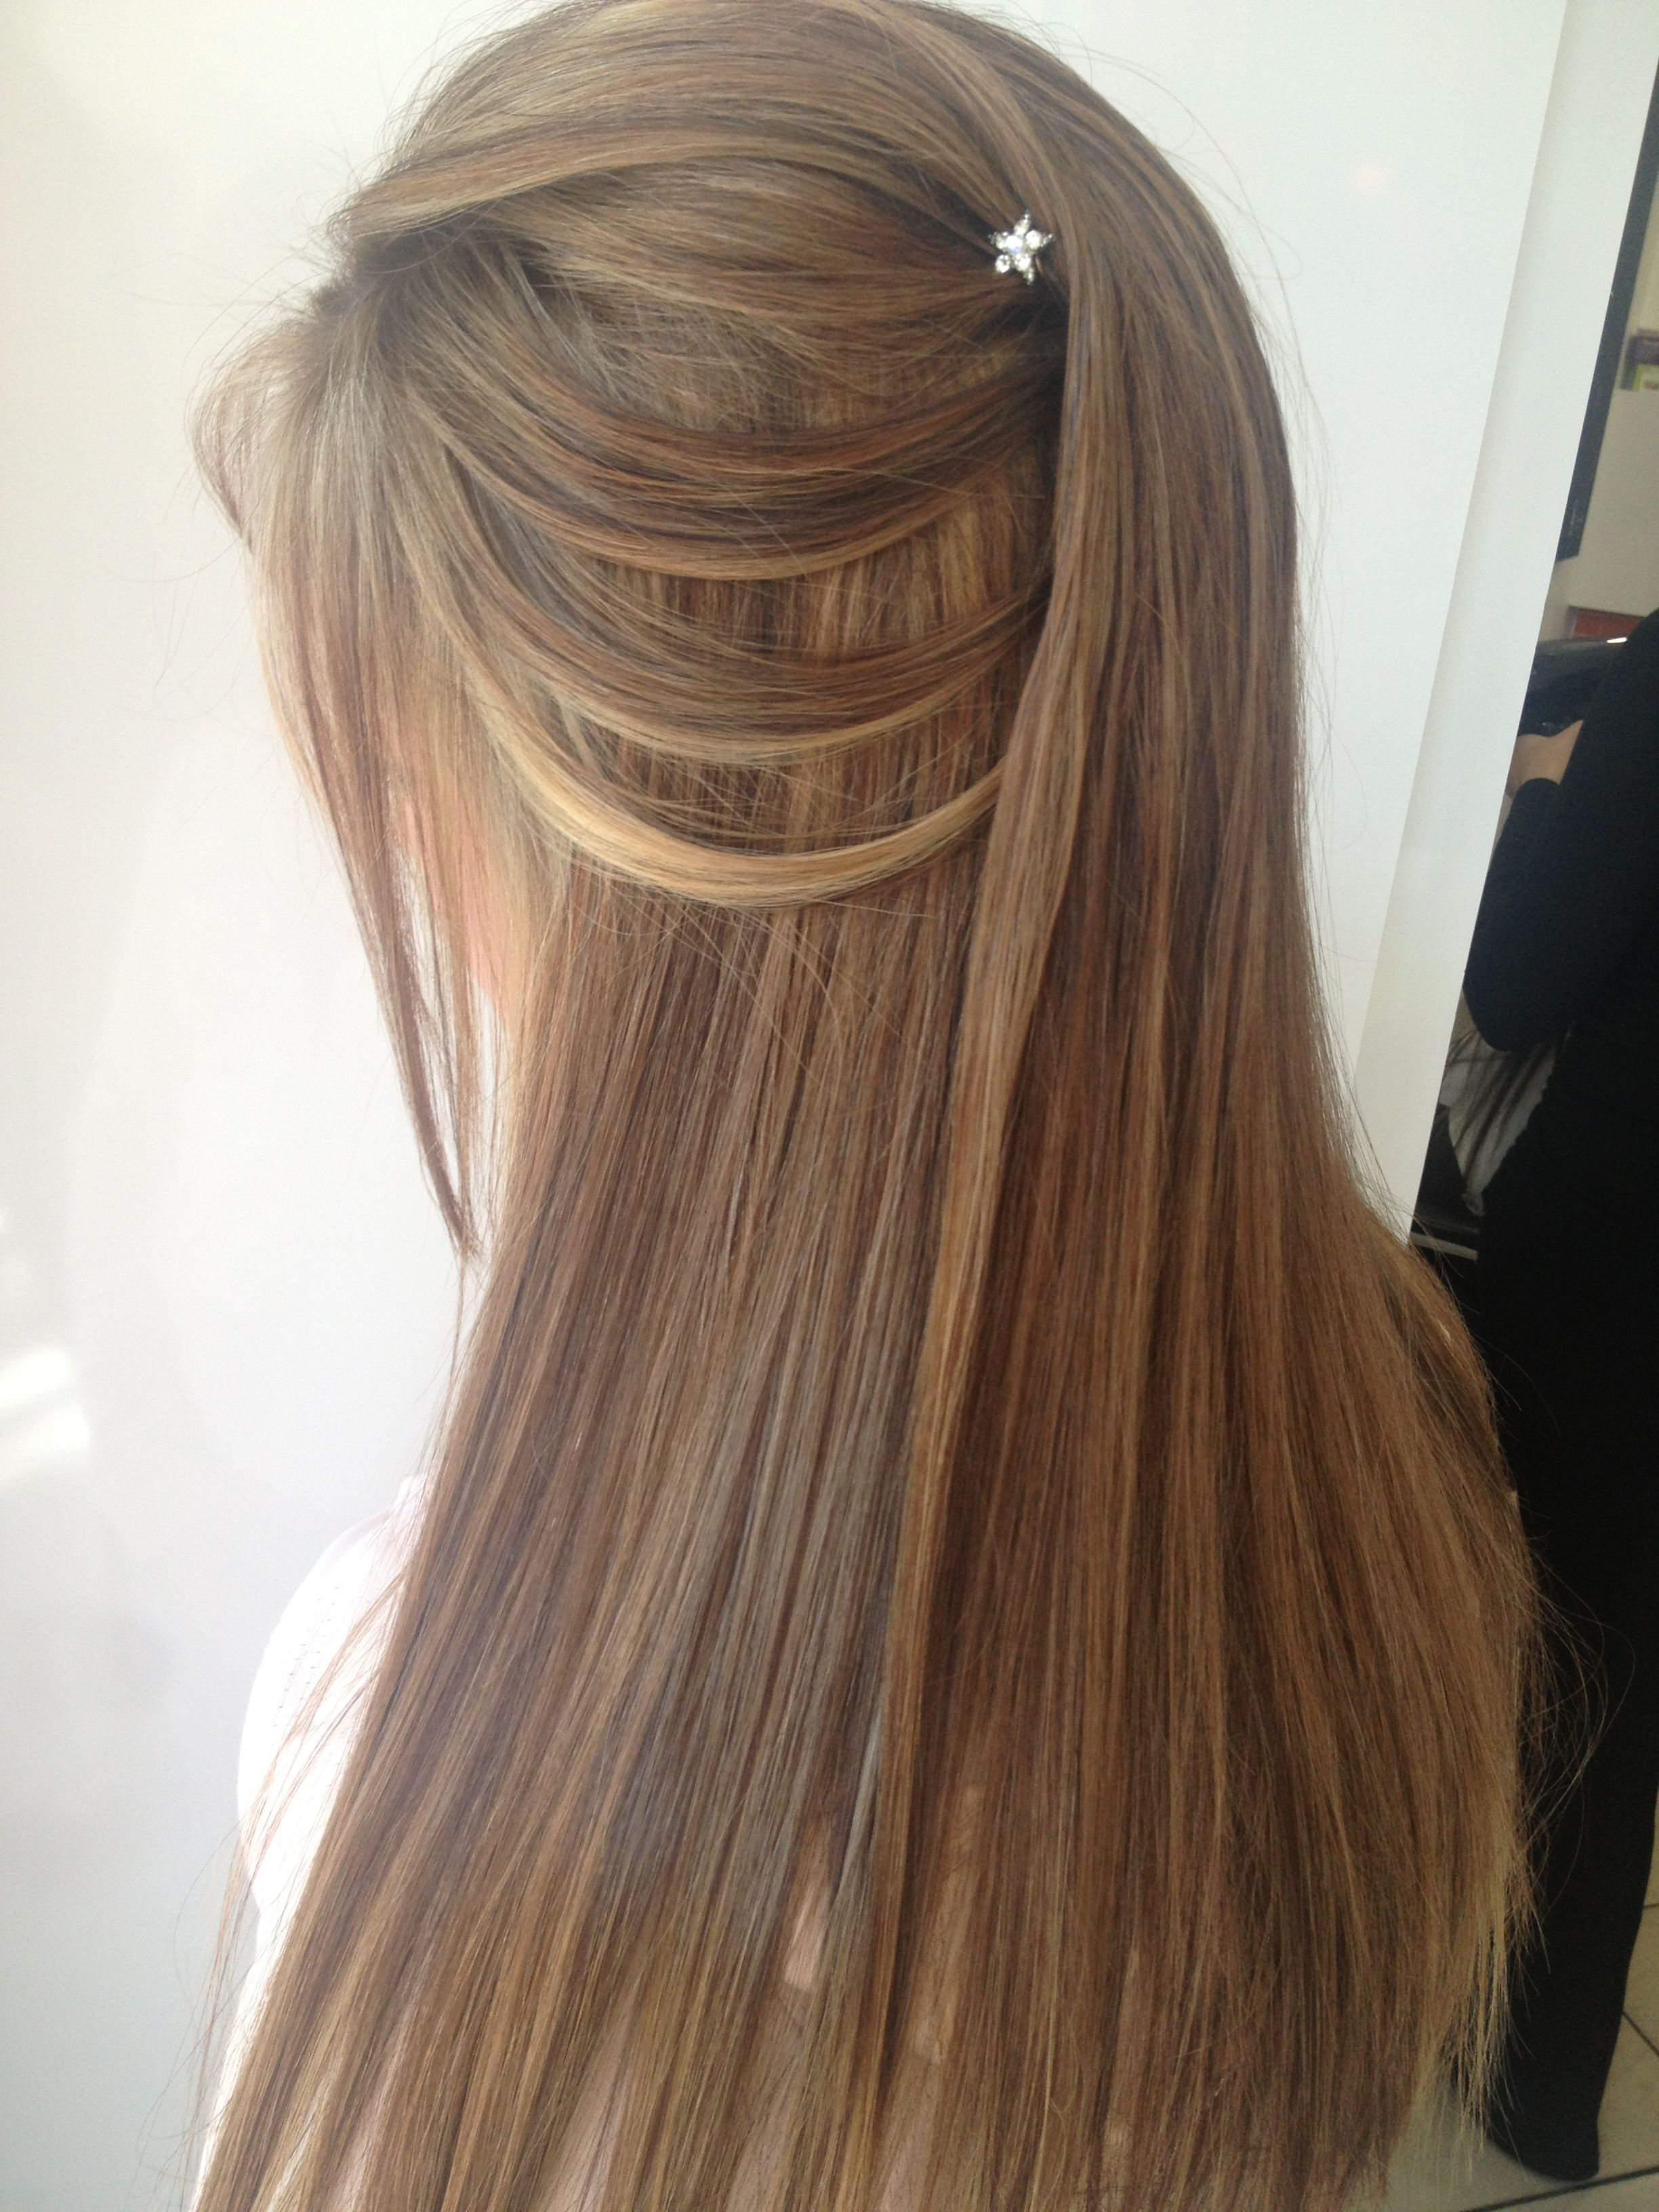 Half up half down hairstyle I did for a matric dance